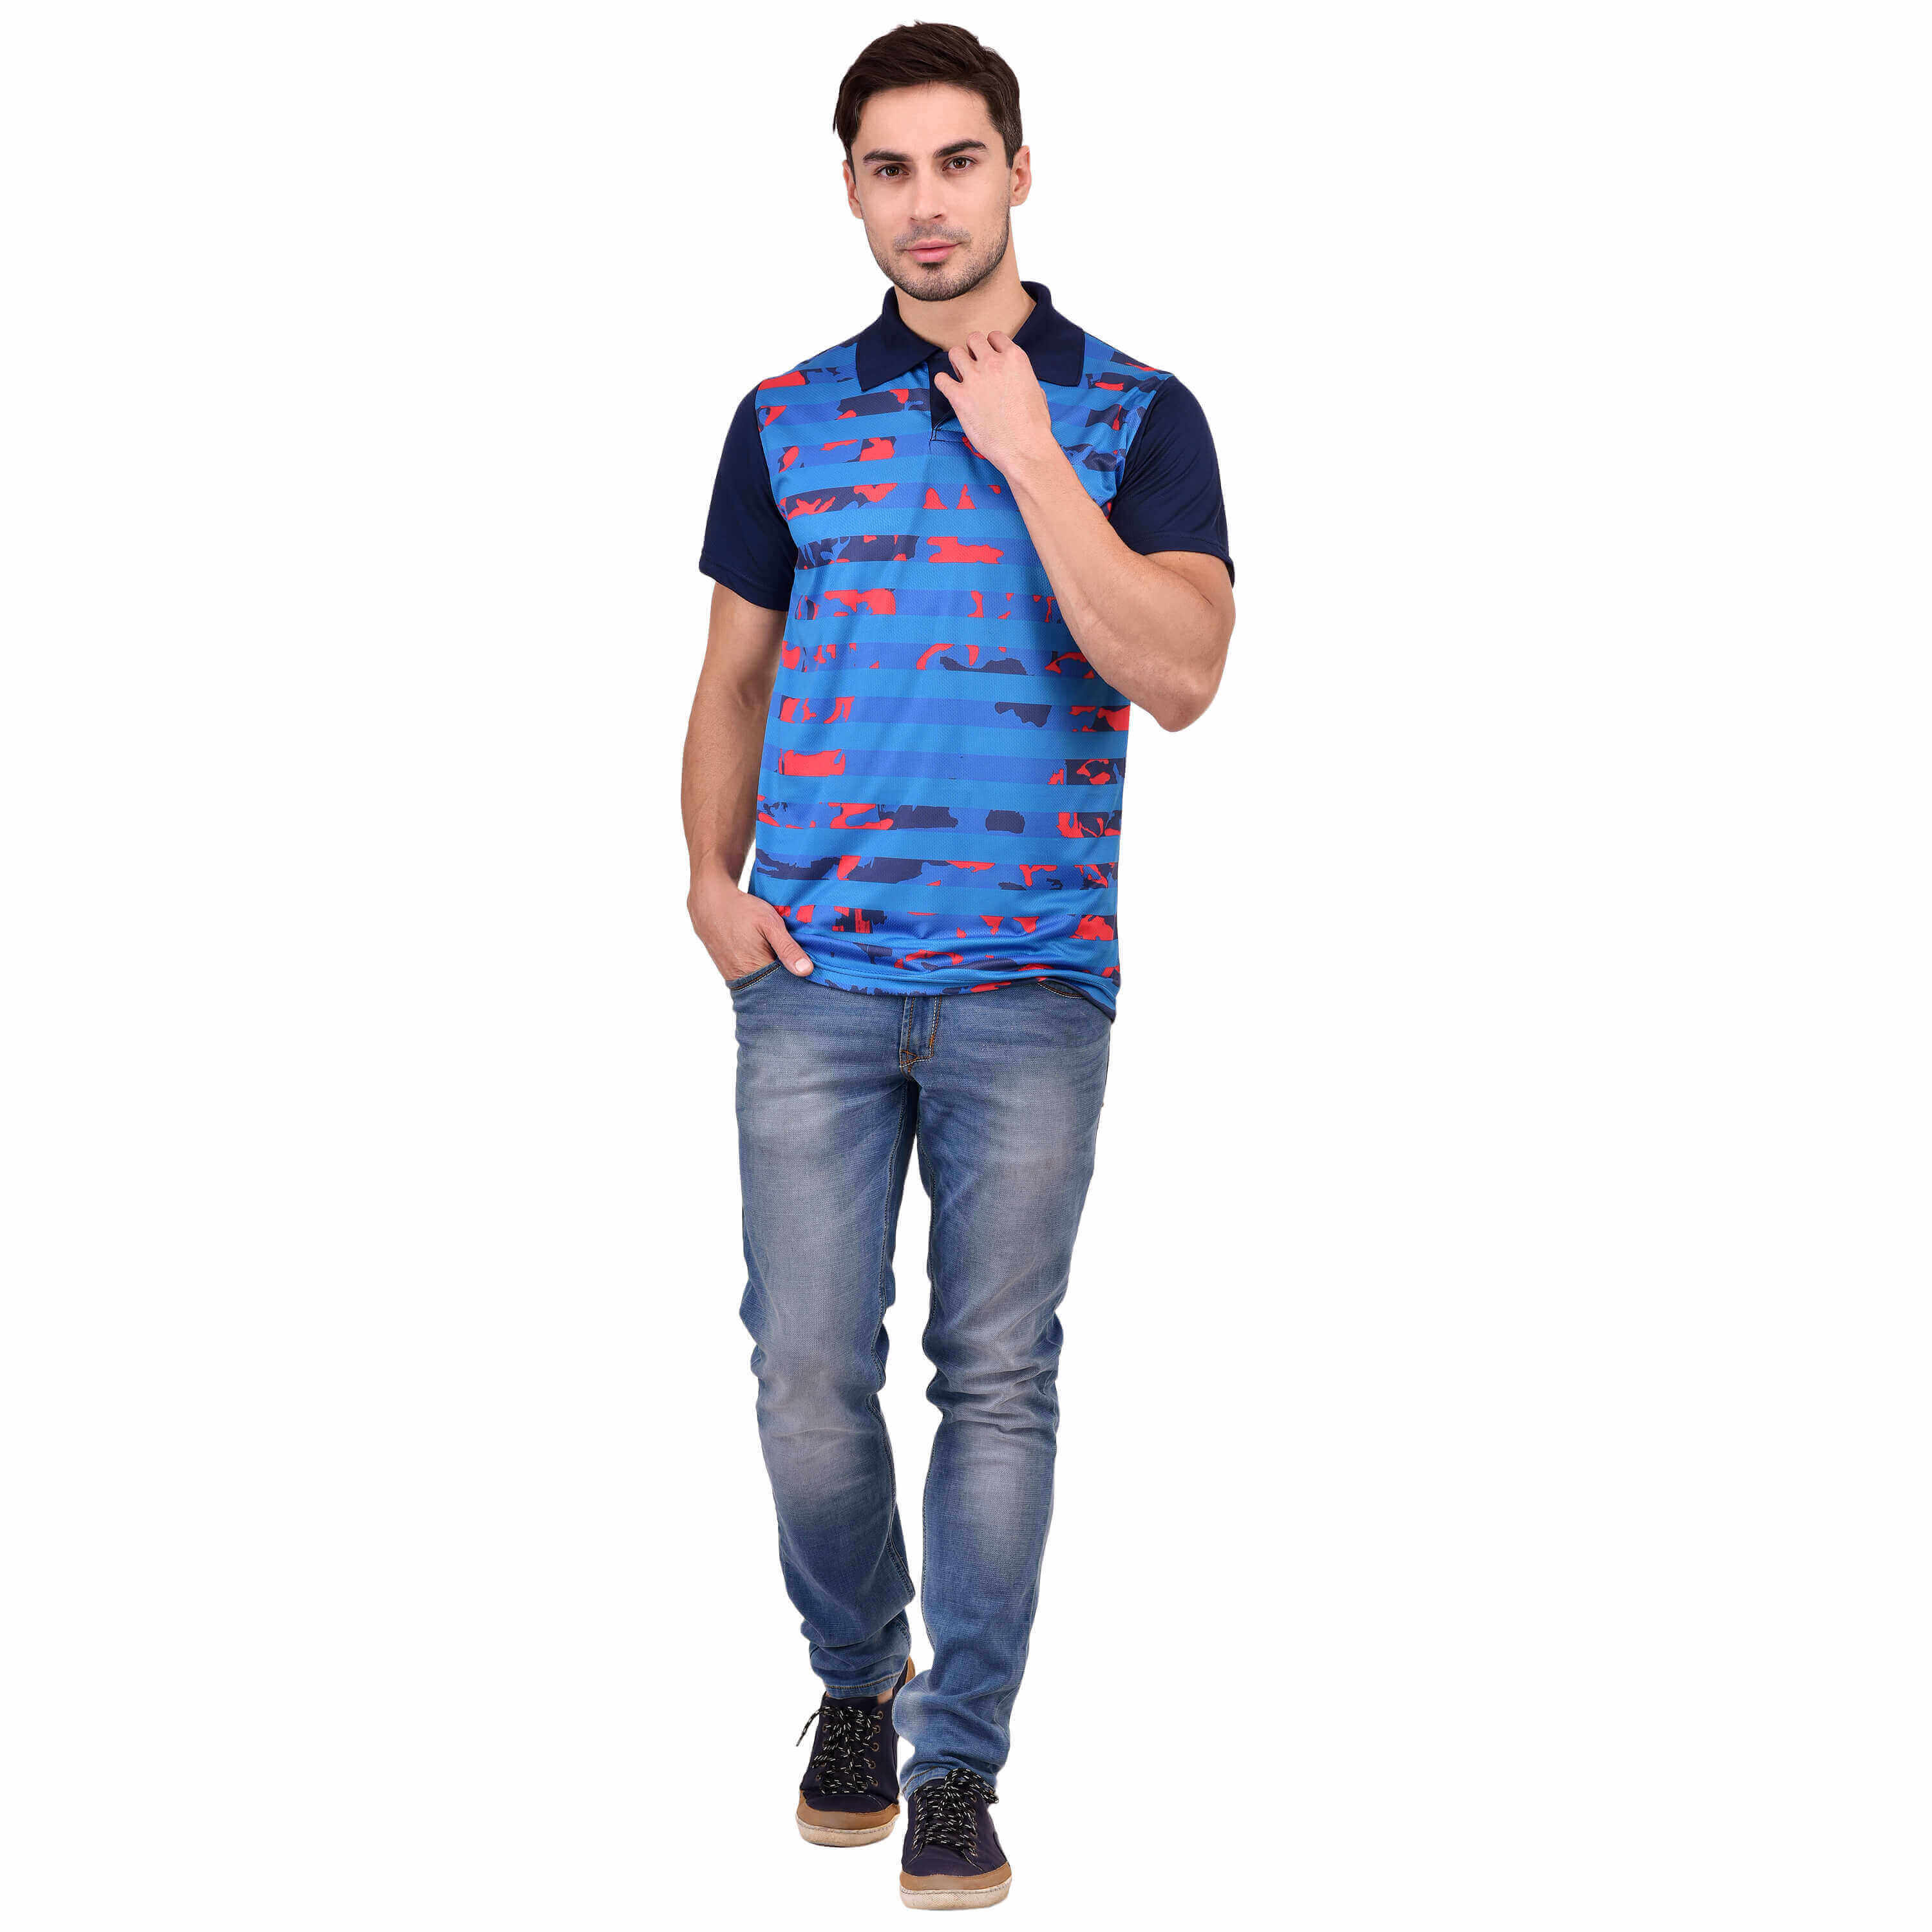 Cool T Shirts Manufacturers in Saharanpur